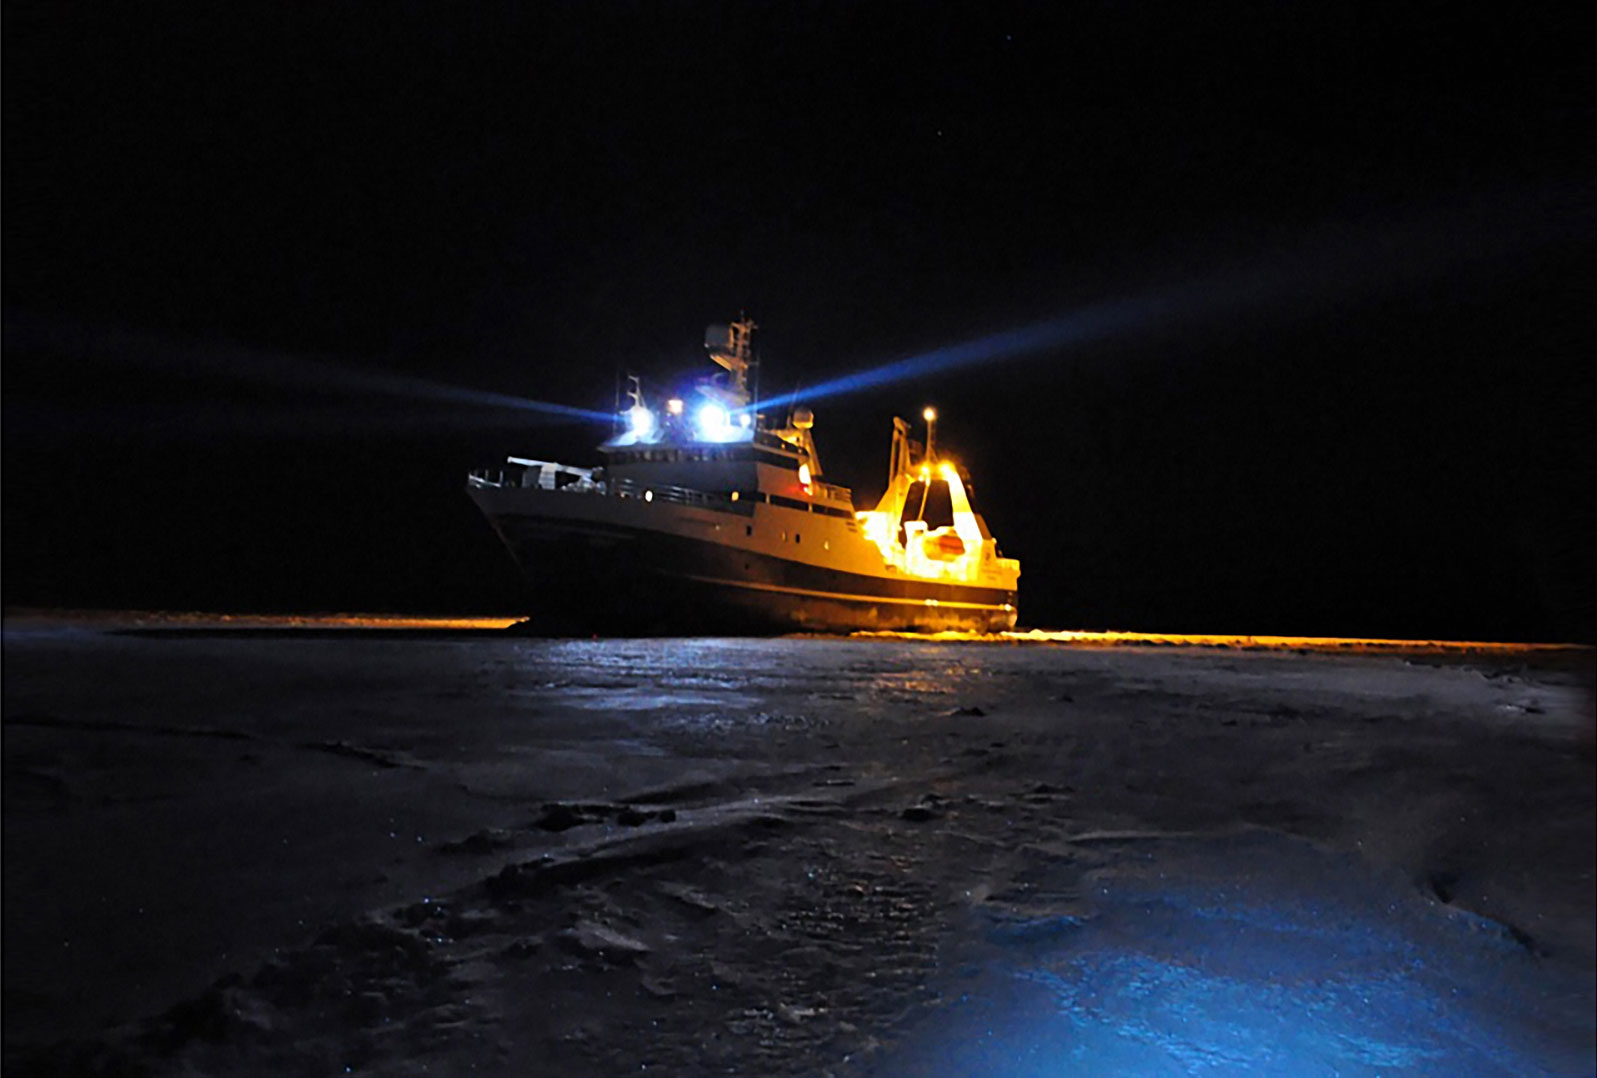 Researchers aboard the Helmer  Hanssen (opposite) often pulled all-nighters in search of life in the frigid waters of the high north. NTNU